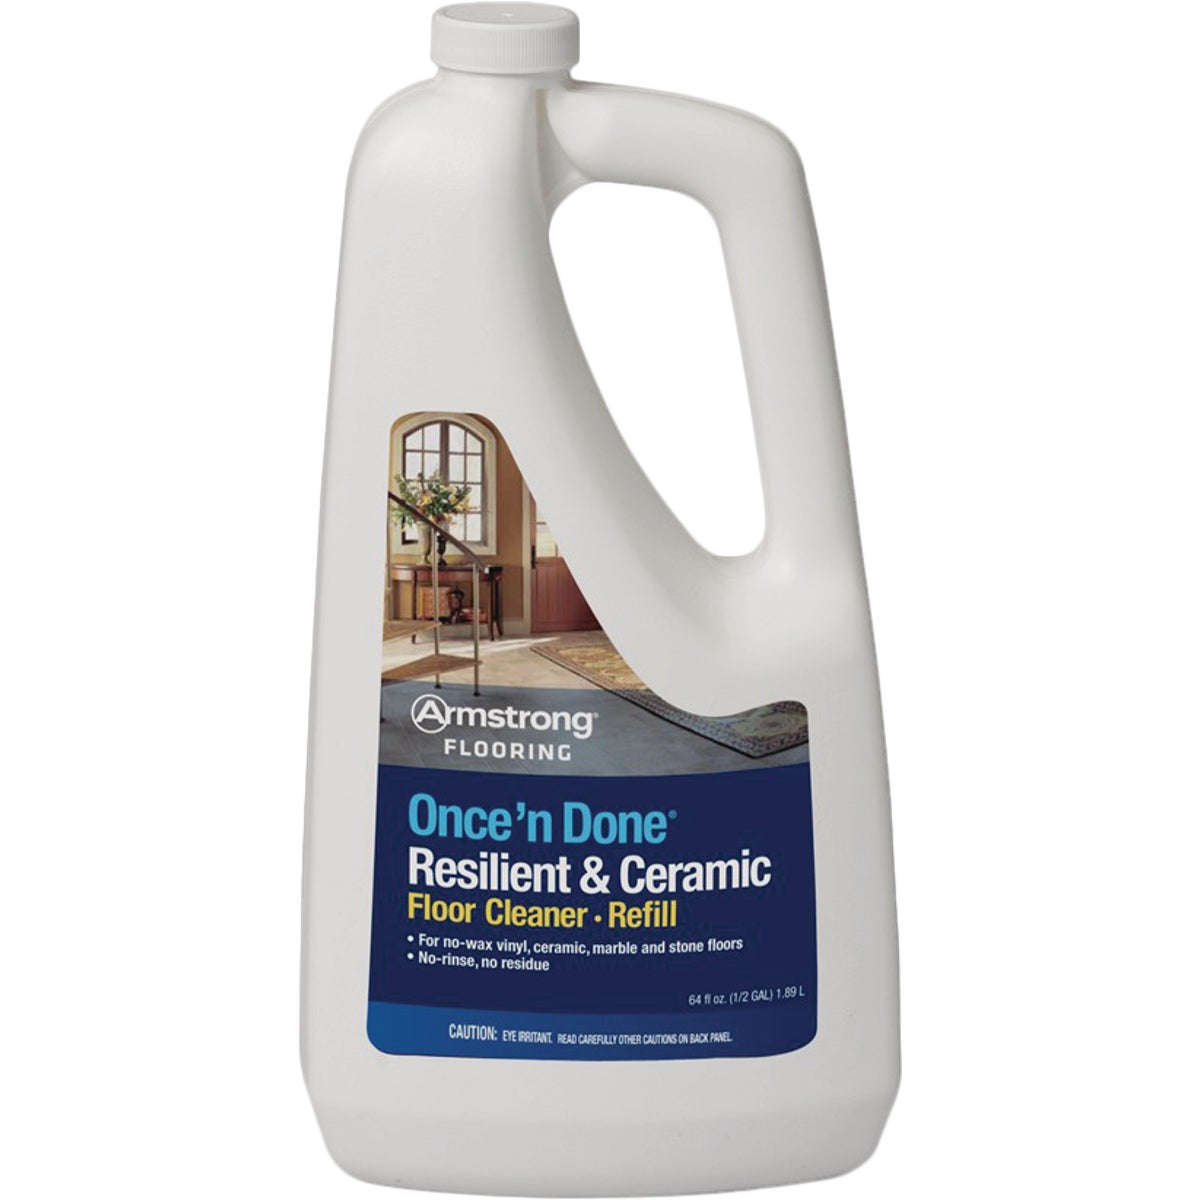 Enzyme Wizard No Rinse Floor CleanerCleaning Supplies